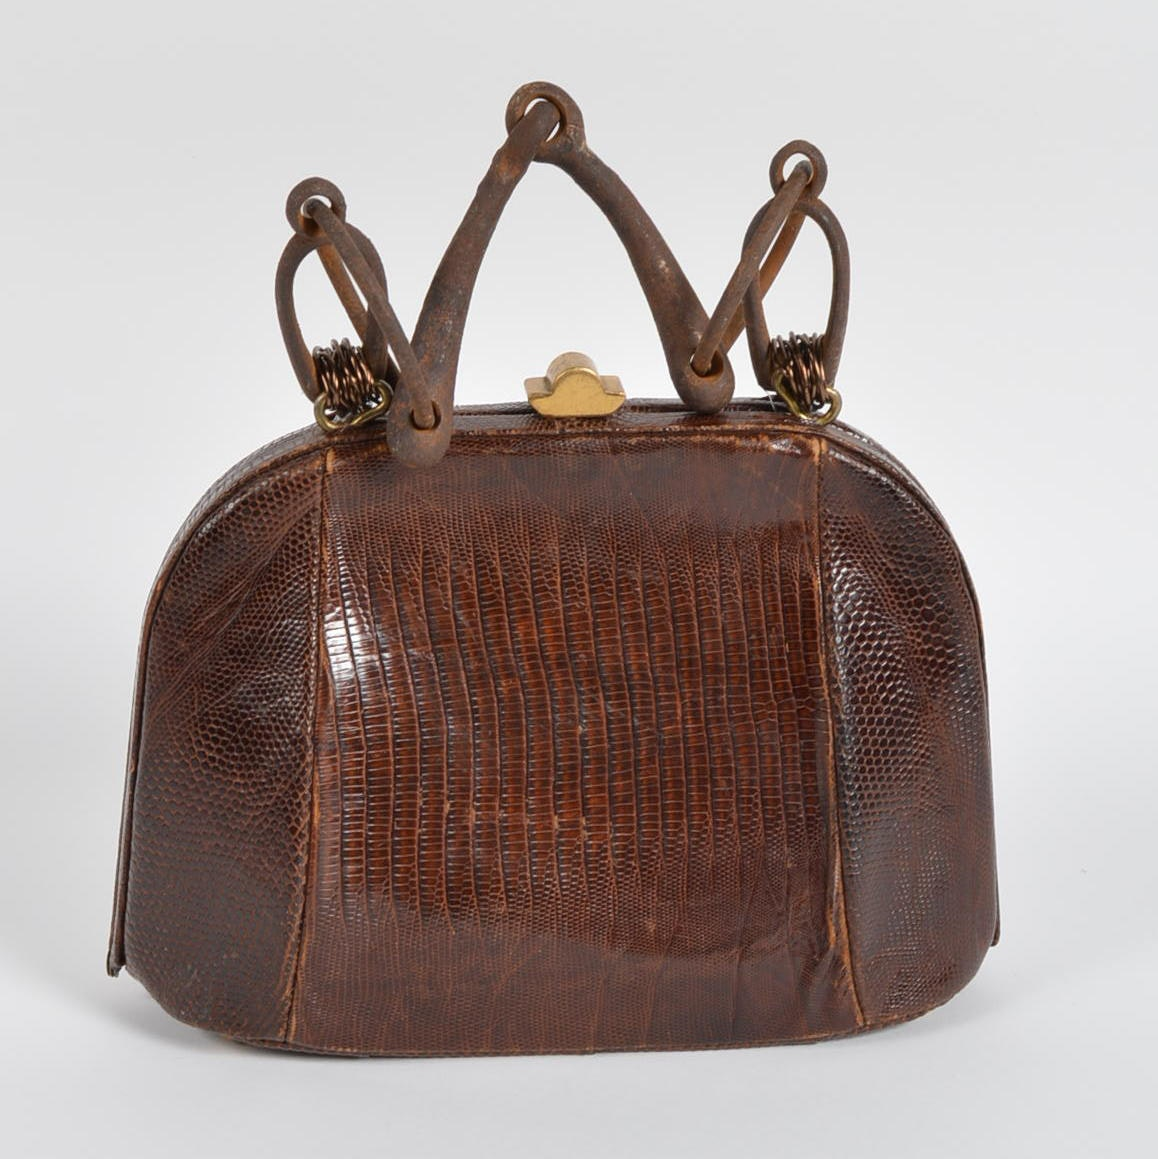 Vintage Snakeskin Handbag with Handle by Pam McMahon